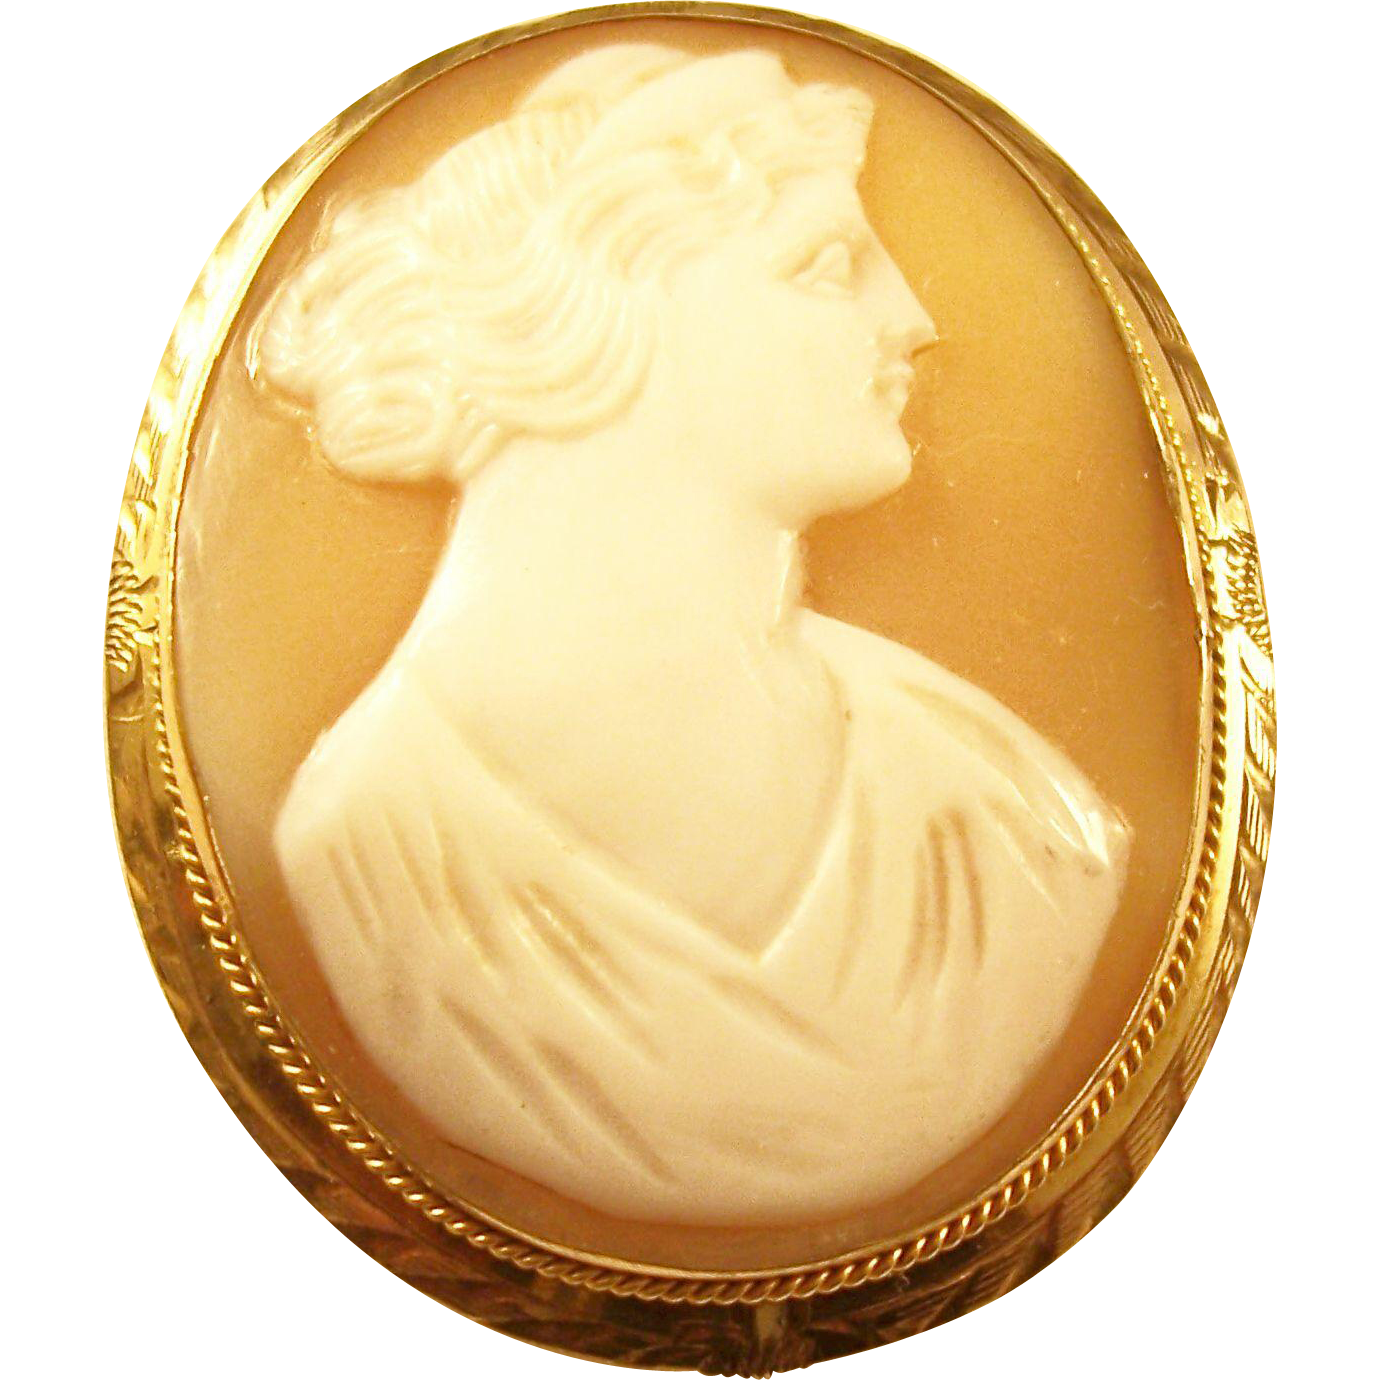 Lovely Vintage Carved Cameo Brooch in Gold Filled Mount - English